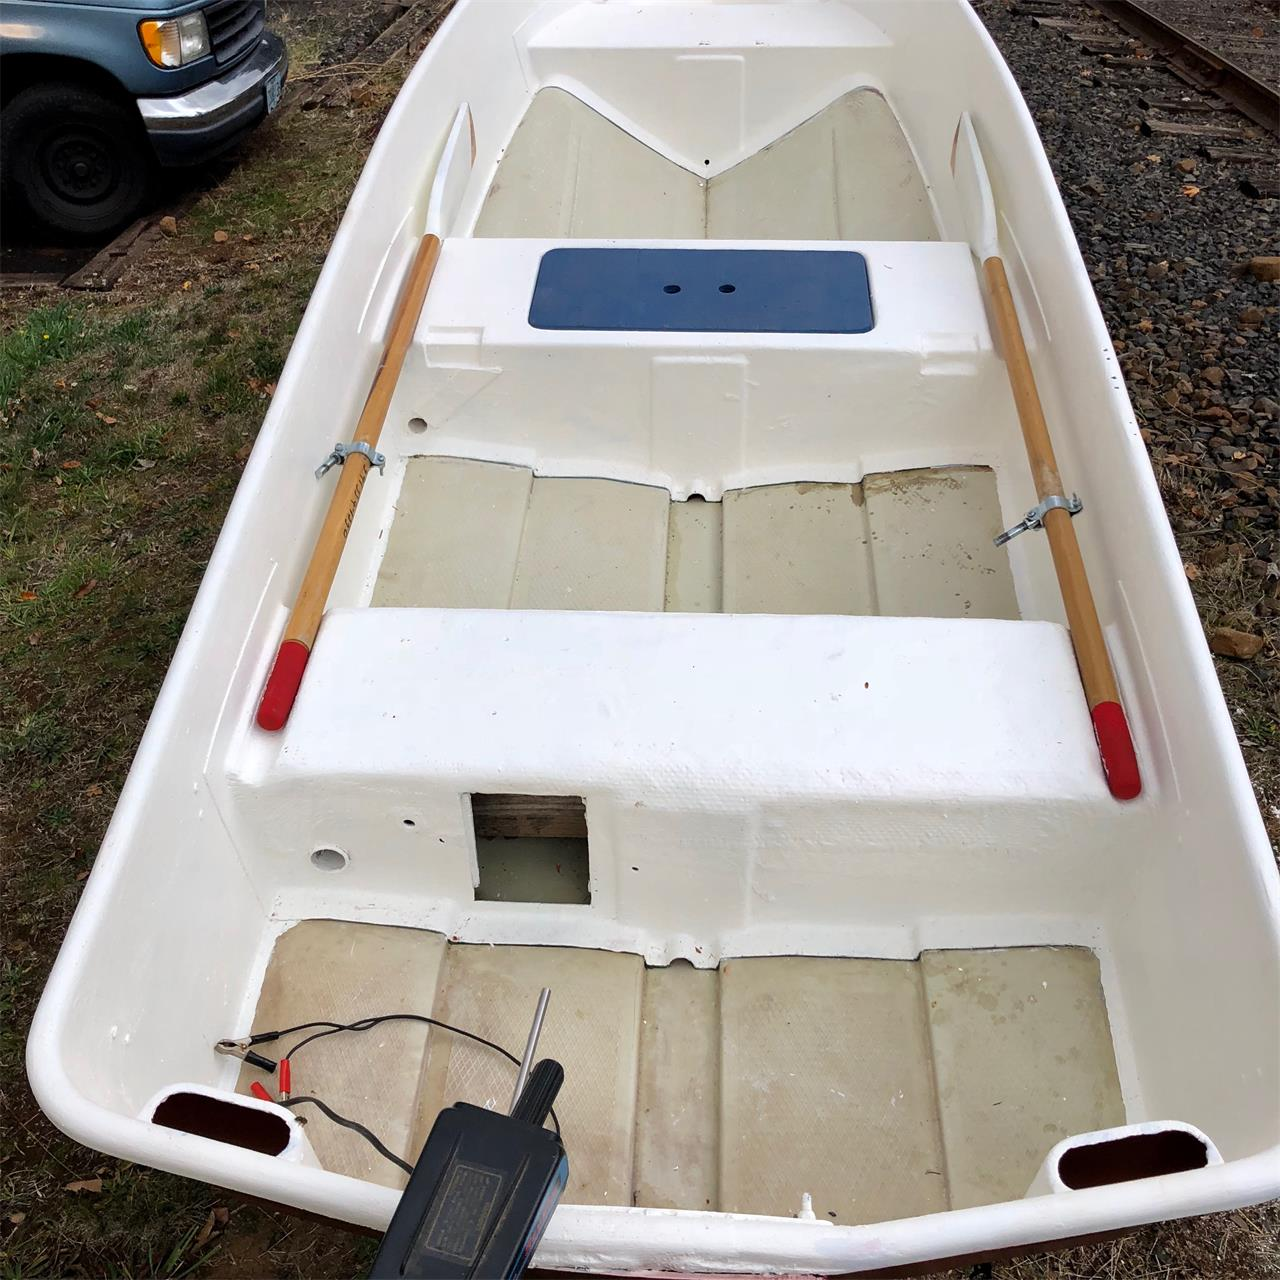 Sears Gamefisher 12 Fiberglas On Great Trailer Excboat Gorgenet